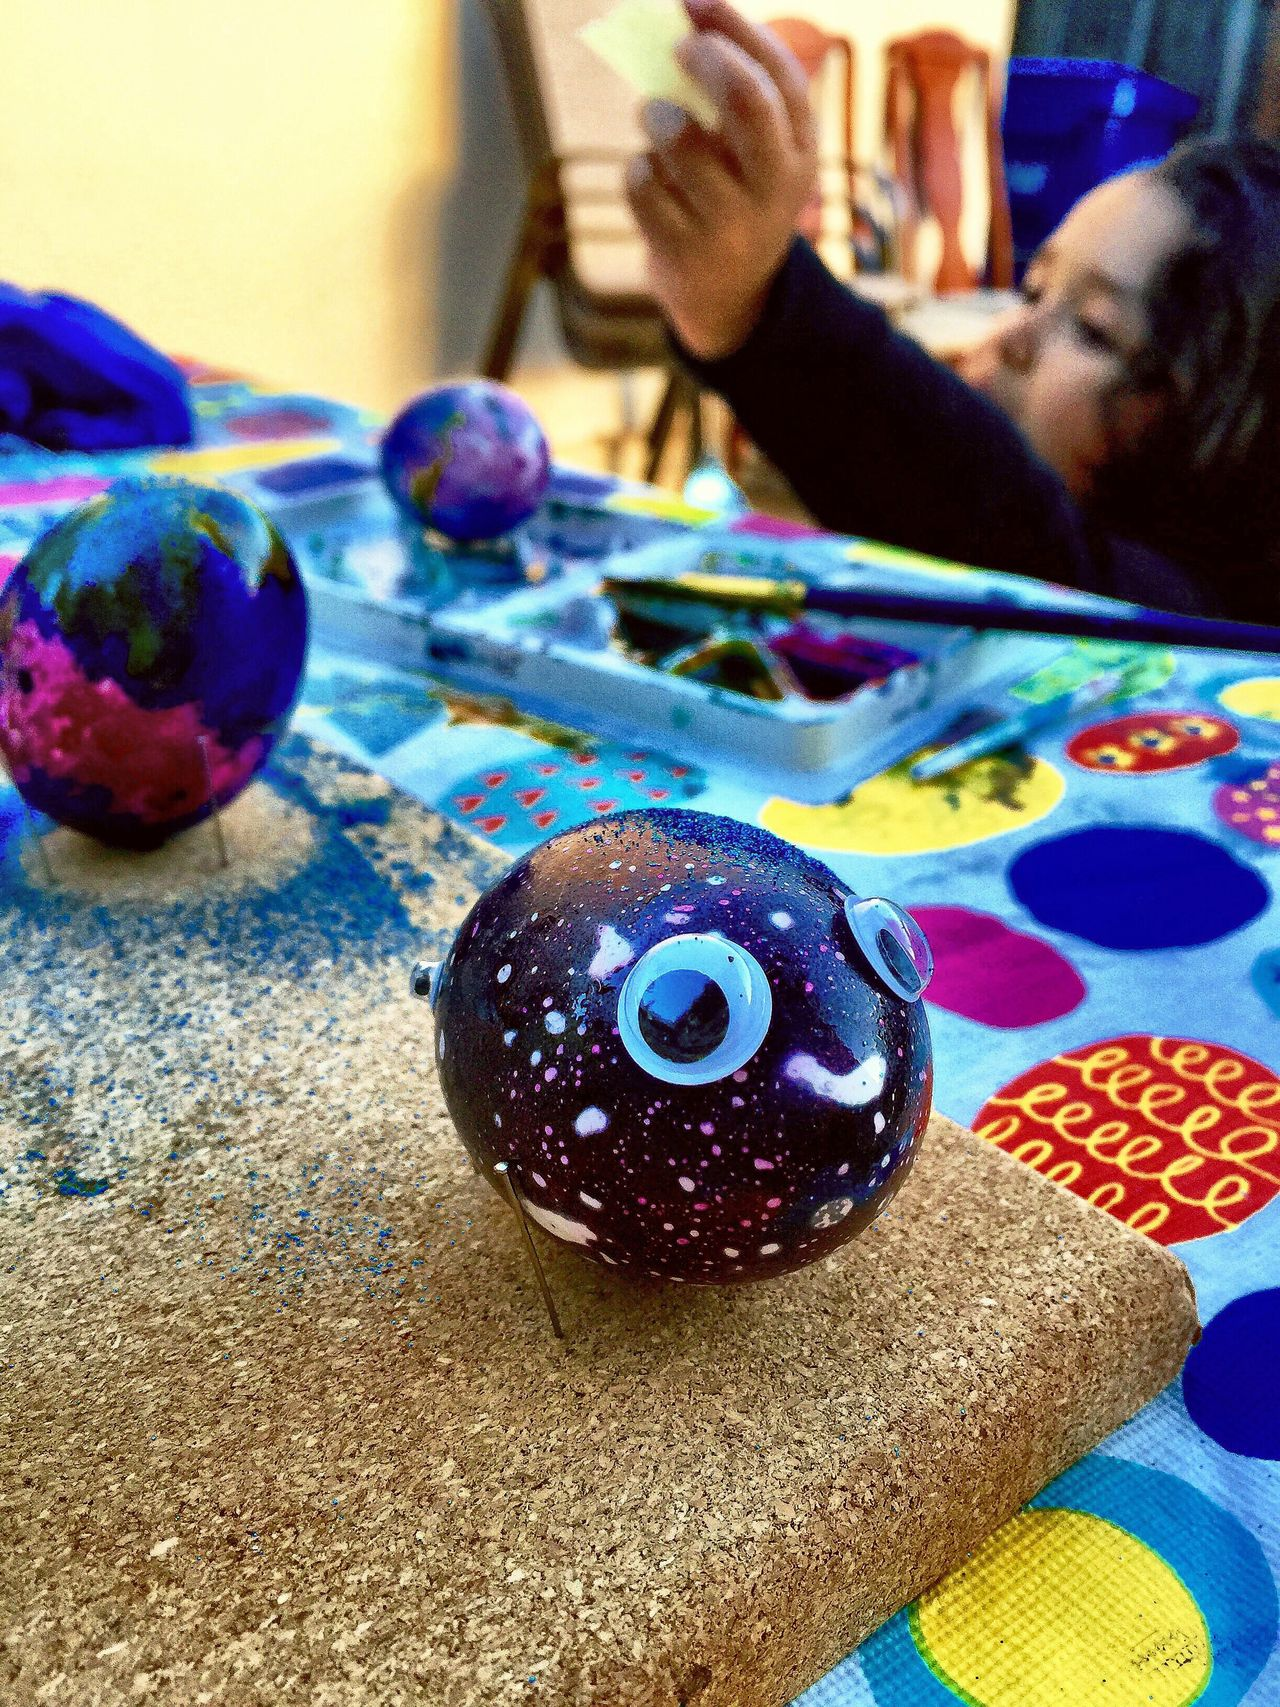 Dinosaur Easter-Egg Indoors  Table Real People Multi Colored One Person Close-up Day People Adult Egg Easter Dinosaur Egg Googly Eyes Purple Happy Cute Smile Adorable Art And Craft DIY EyeEmNewHere Crafts Art Is Everywhere The Week On Eyem EyeEmNewHere Break The Mold The Photojournalist - 2017 EyeEm Awards